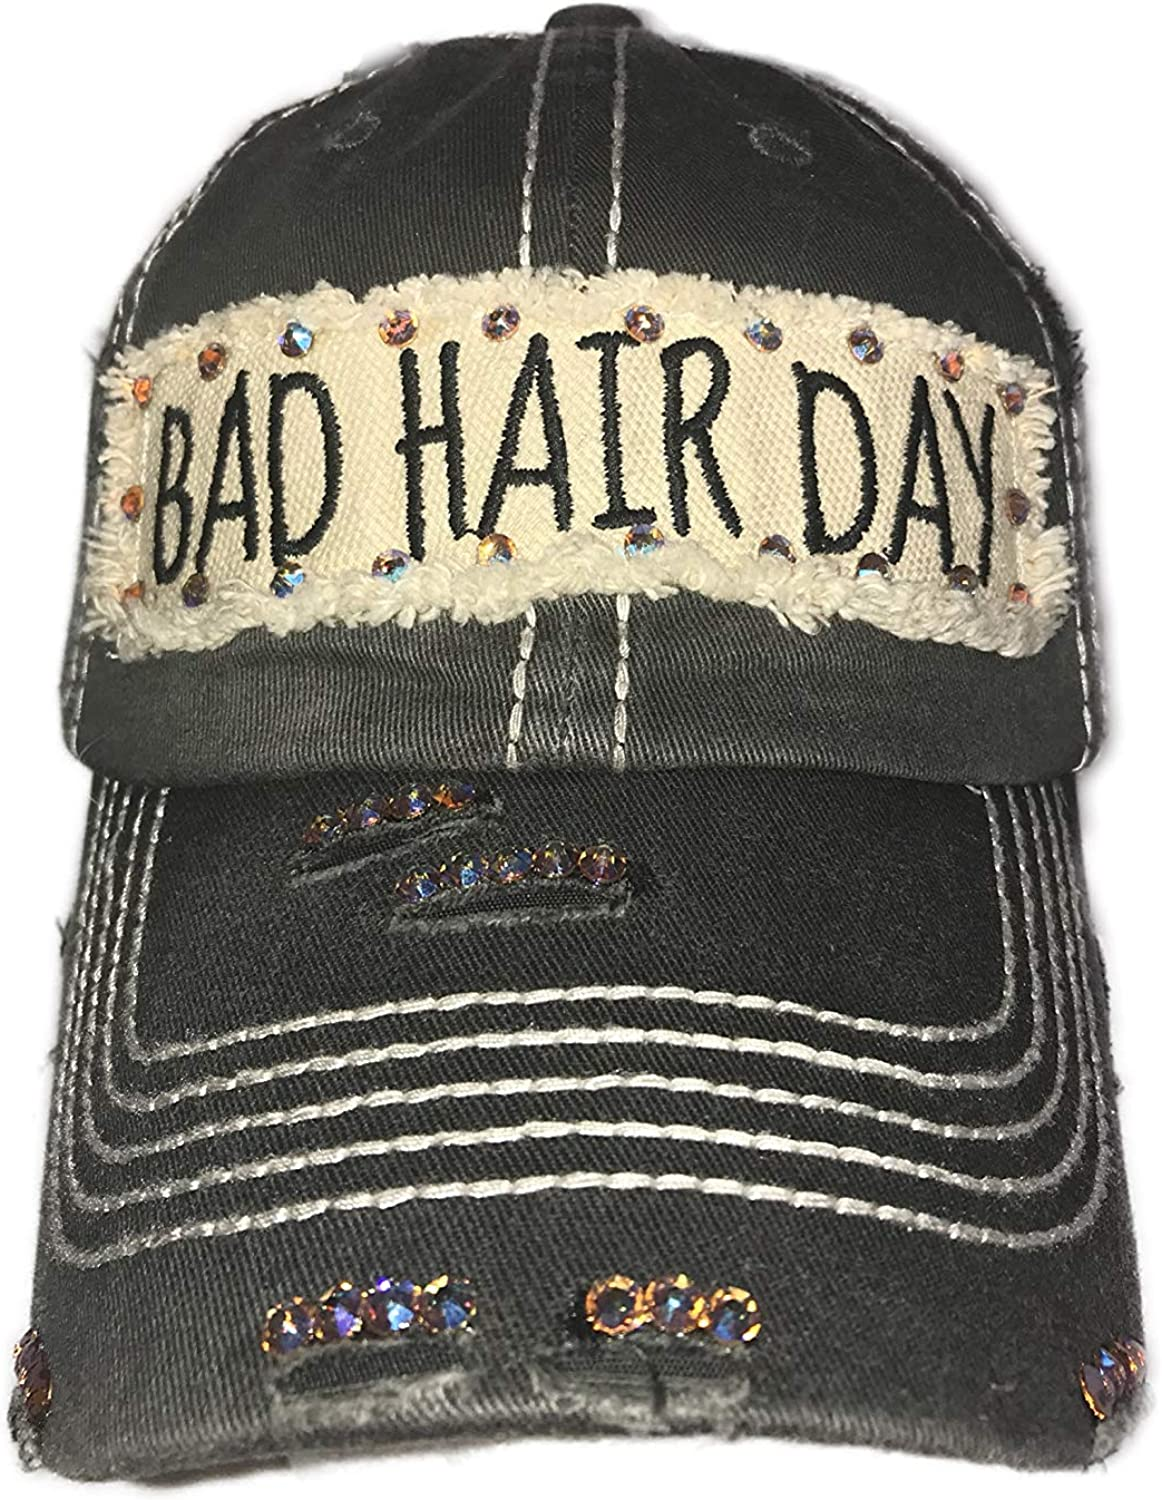 Blinging for Tipps Distressed Charcoal Bad Hair Day Hat with Swarovski Crystals